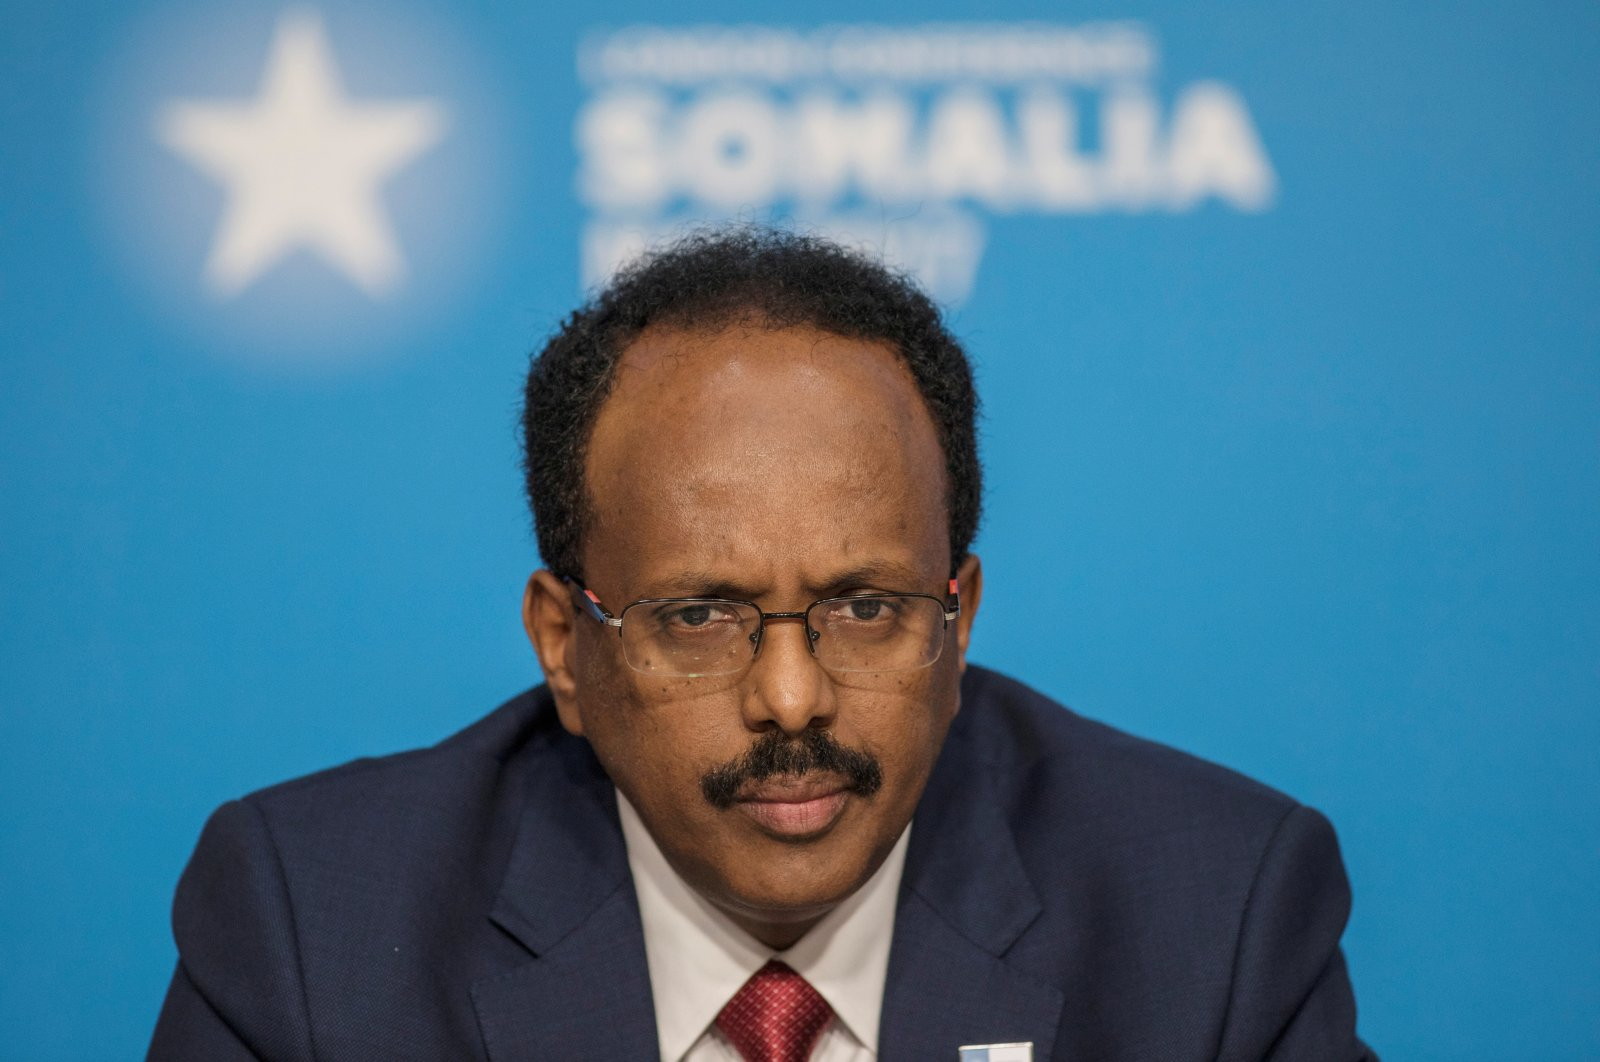 Mohamed Abdullahi Mohamed, president of Somalia, attends the London Somalia Conference at Lancaster House, London, Britain, May 11, 2017. (Reuters Photo)